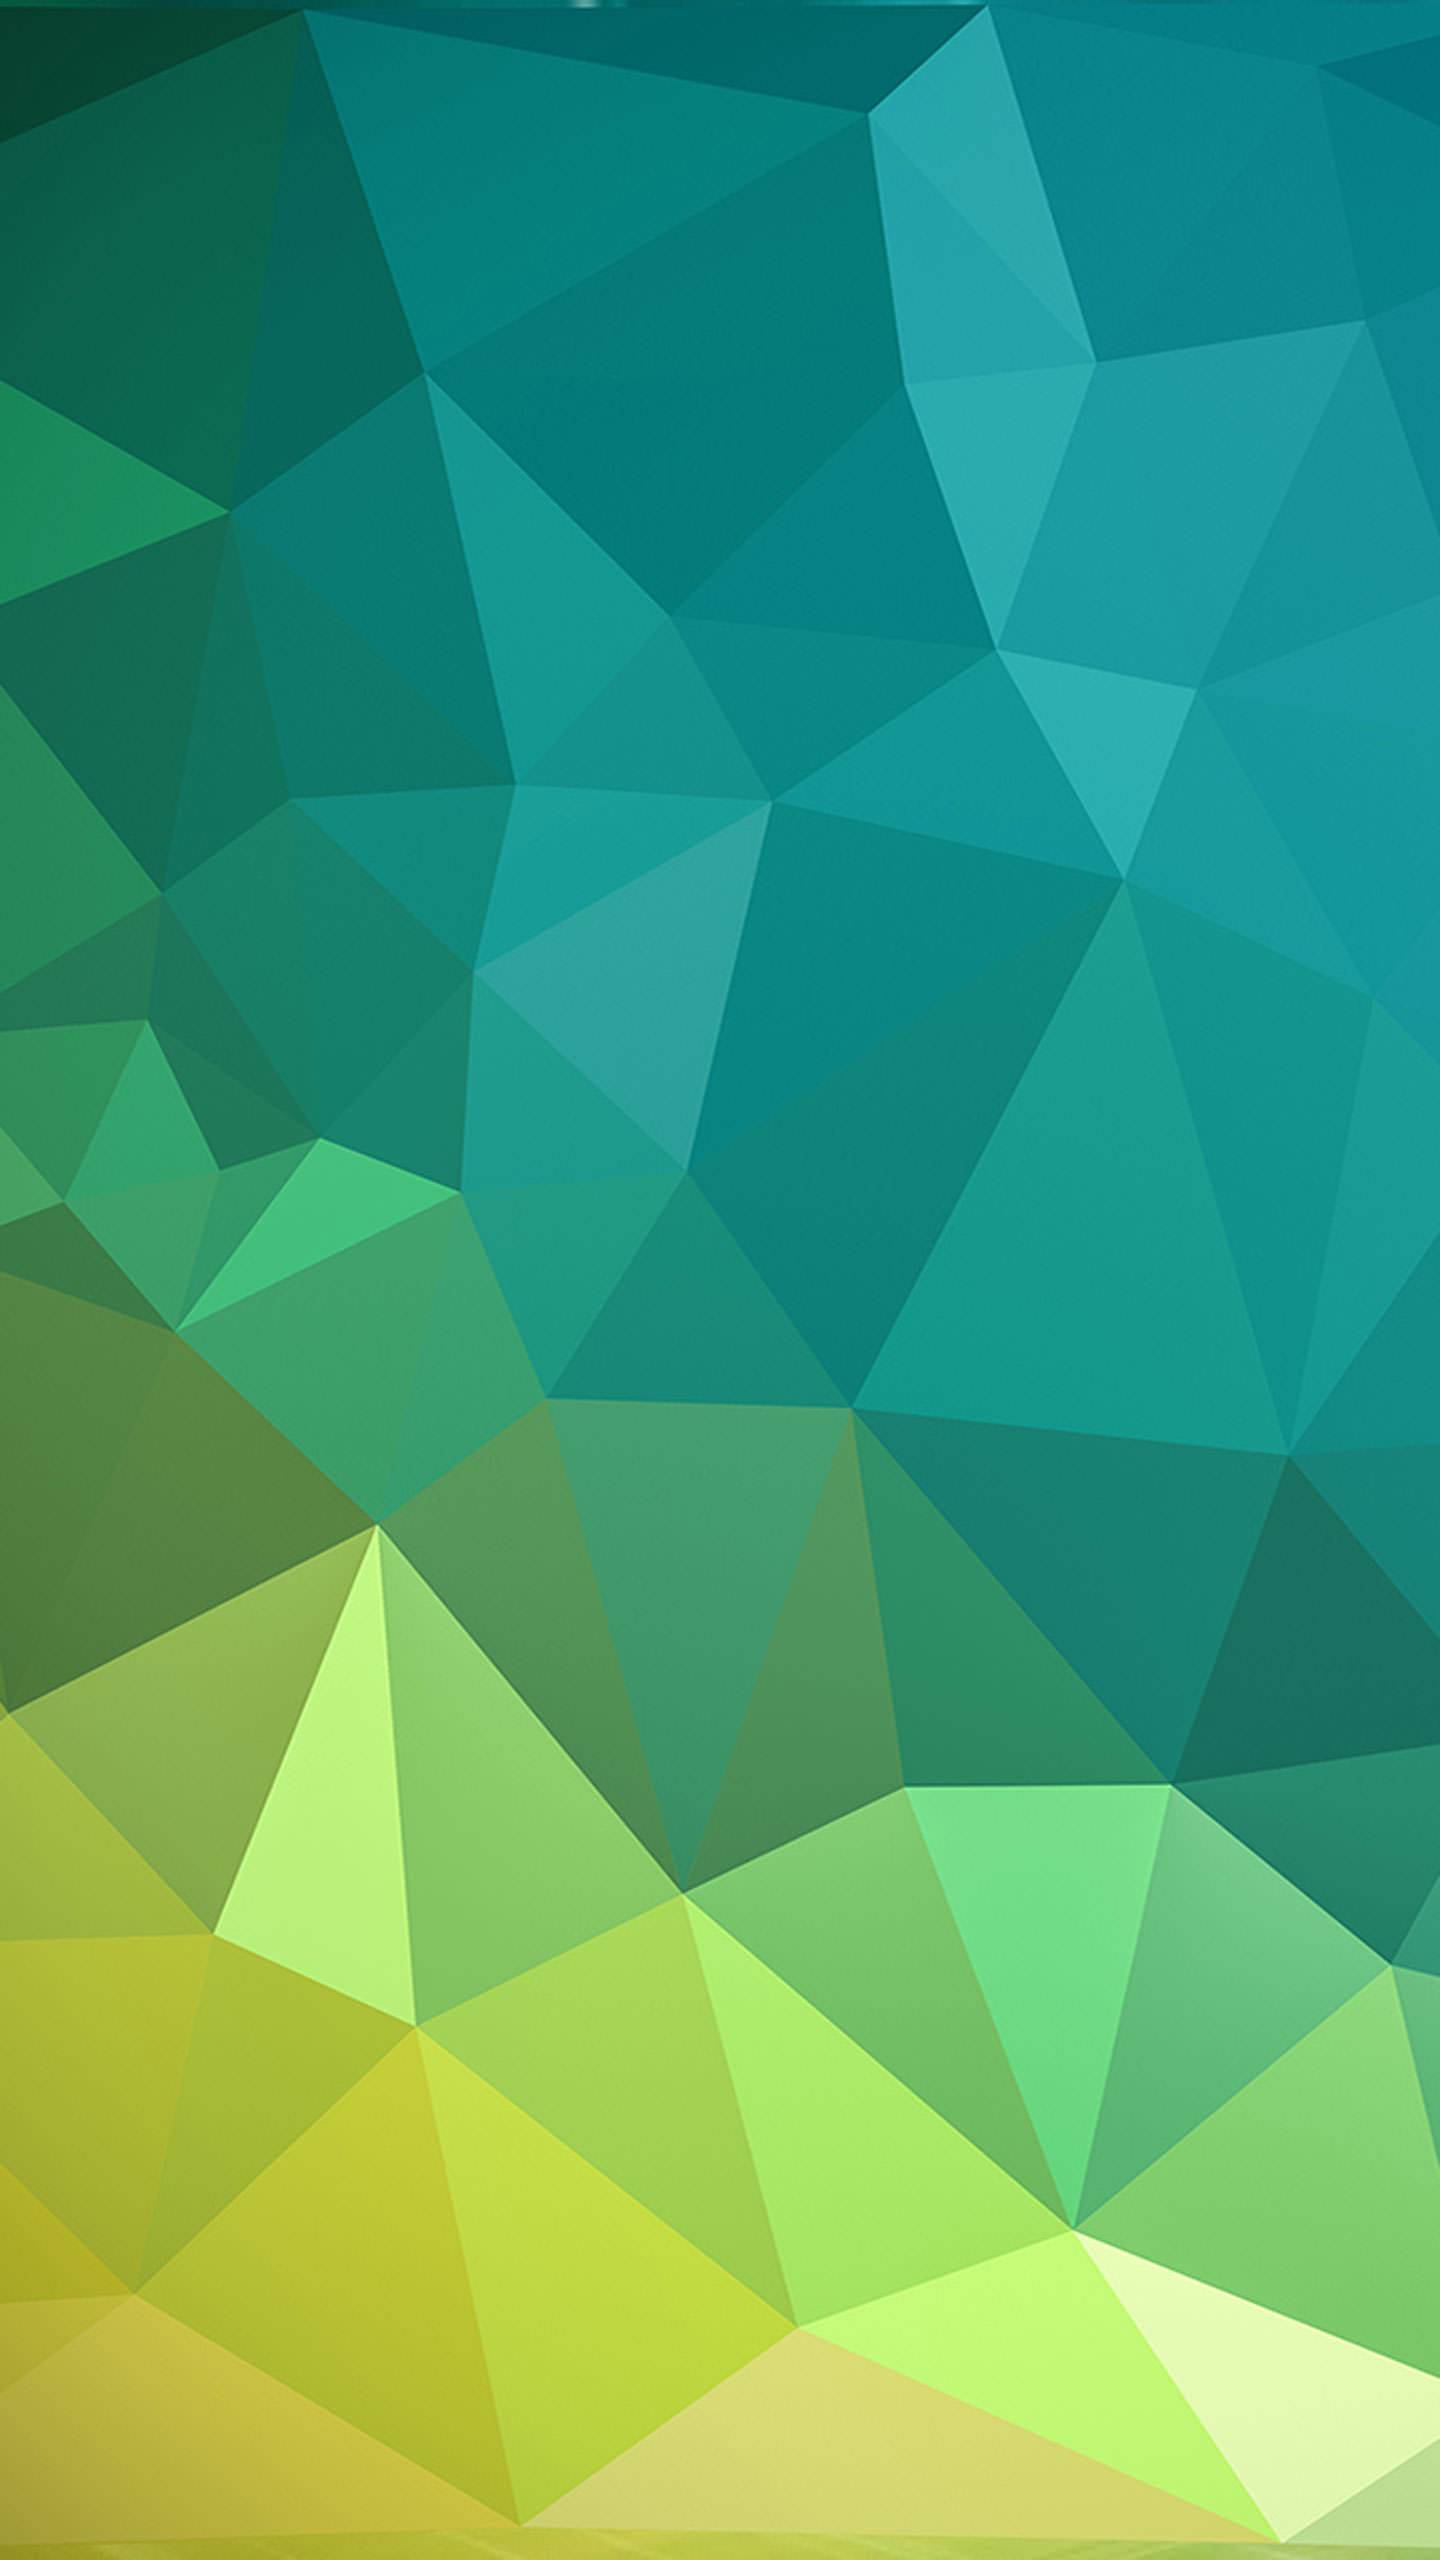 Pattern green yellow cool wallpaper smartphone smartphone quadhd wallpaper voltagebd Image collections